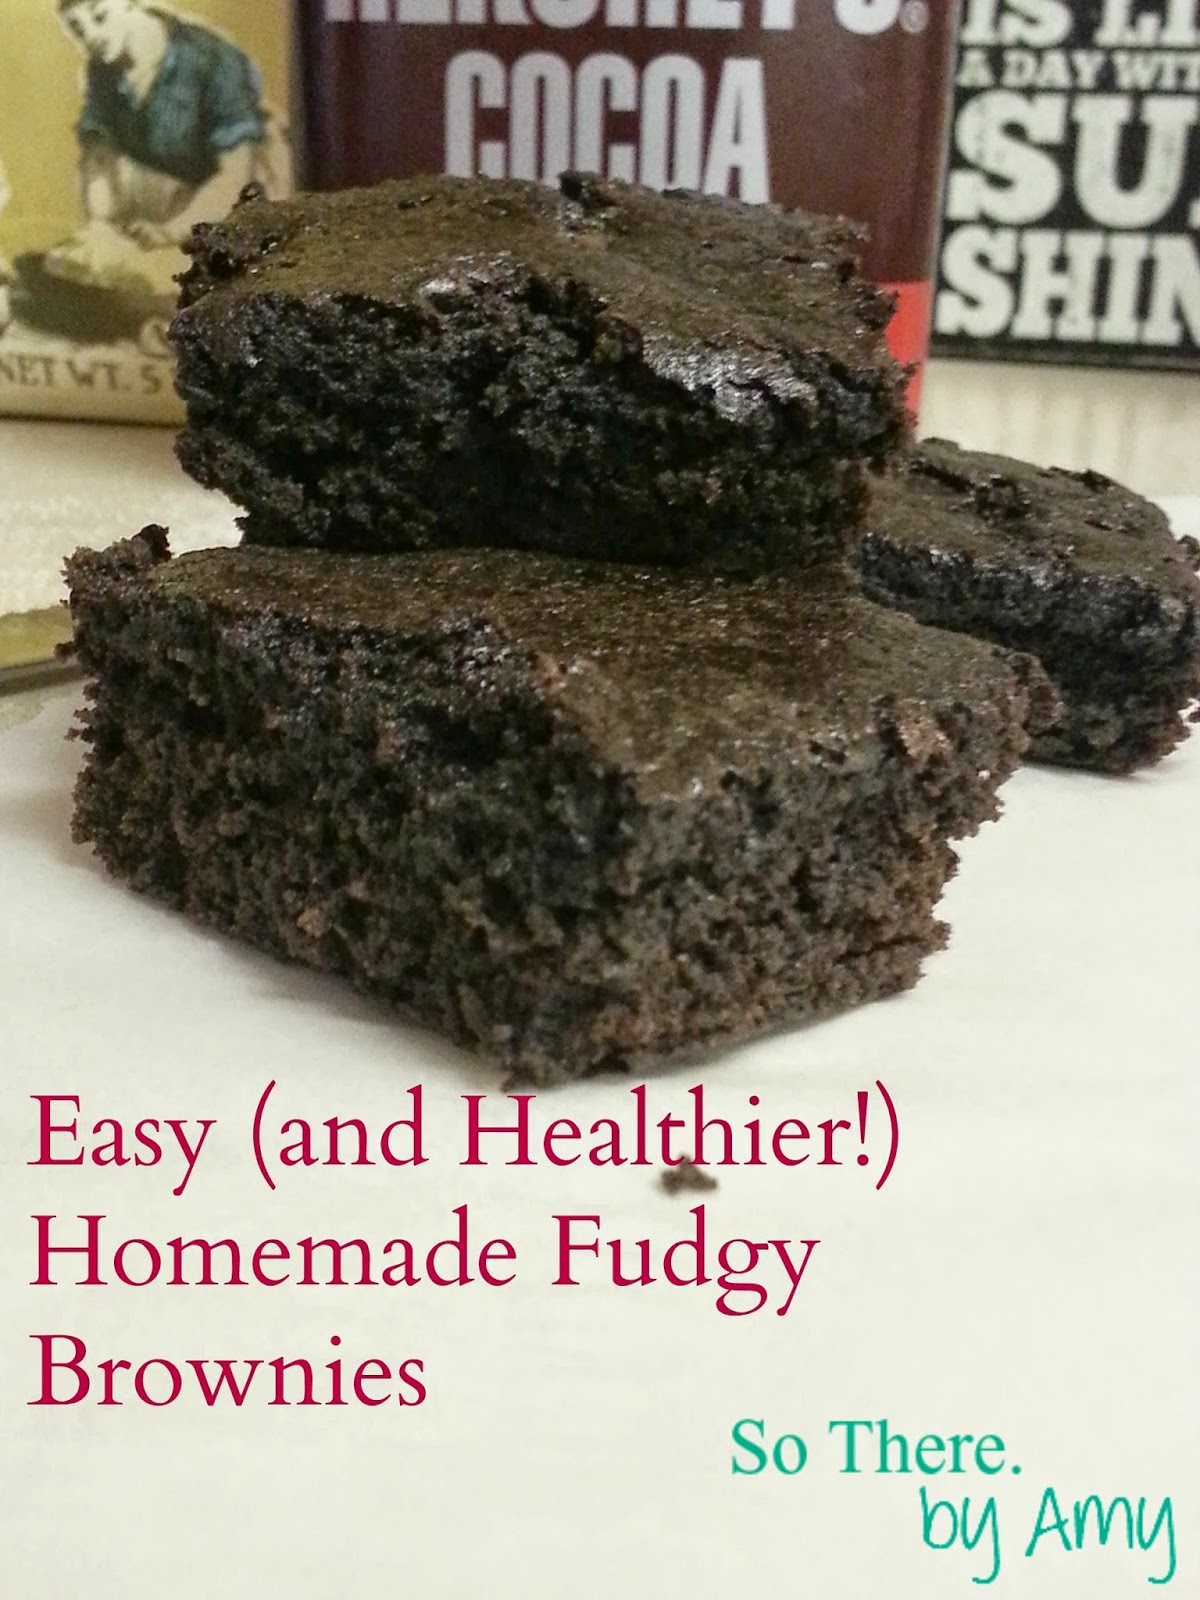 Bake for 35 minutes, and you have quick, easy, and slightly more healthy homemade fudgy brownies!